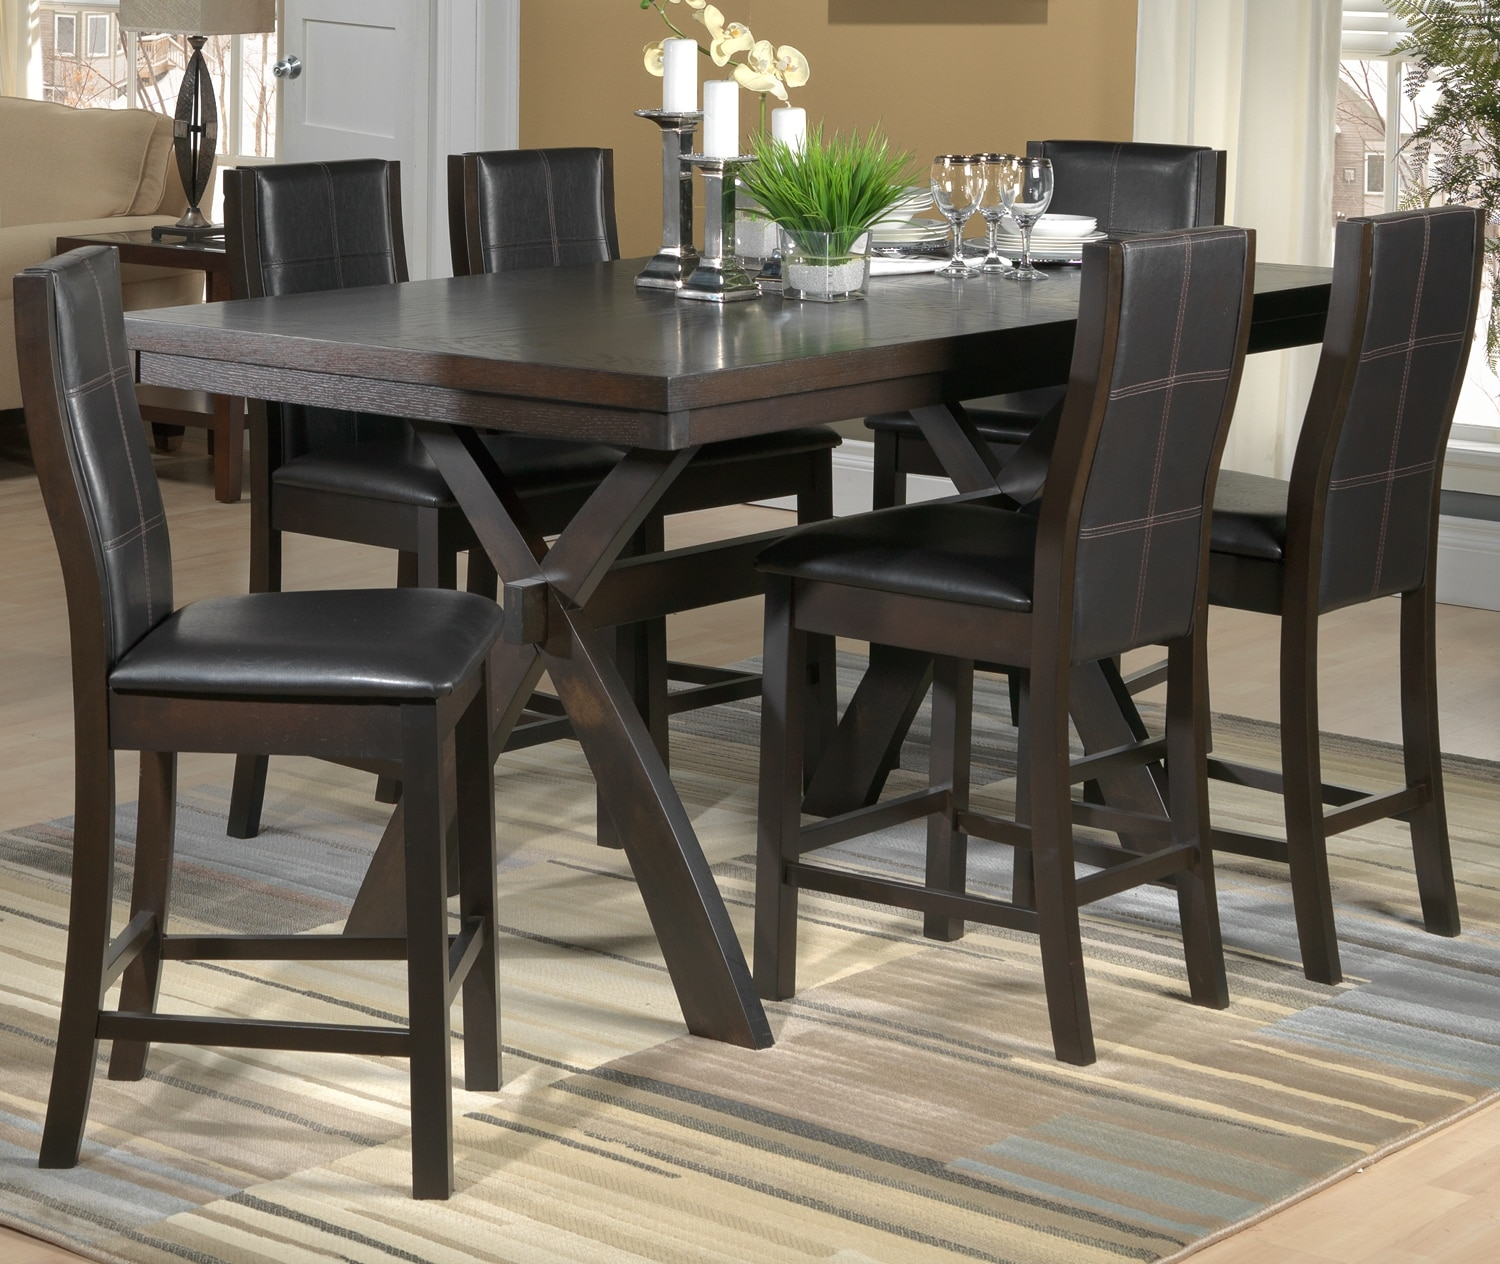 Grethell 7 Piece Pub Height Dining Room Set